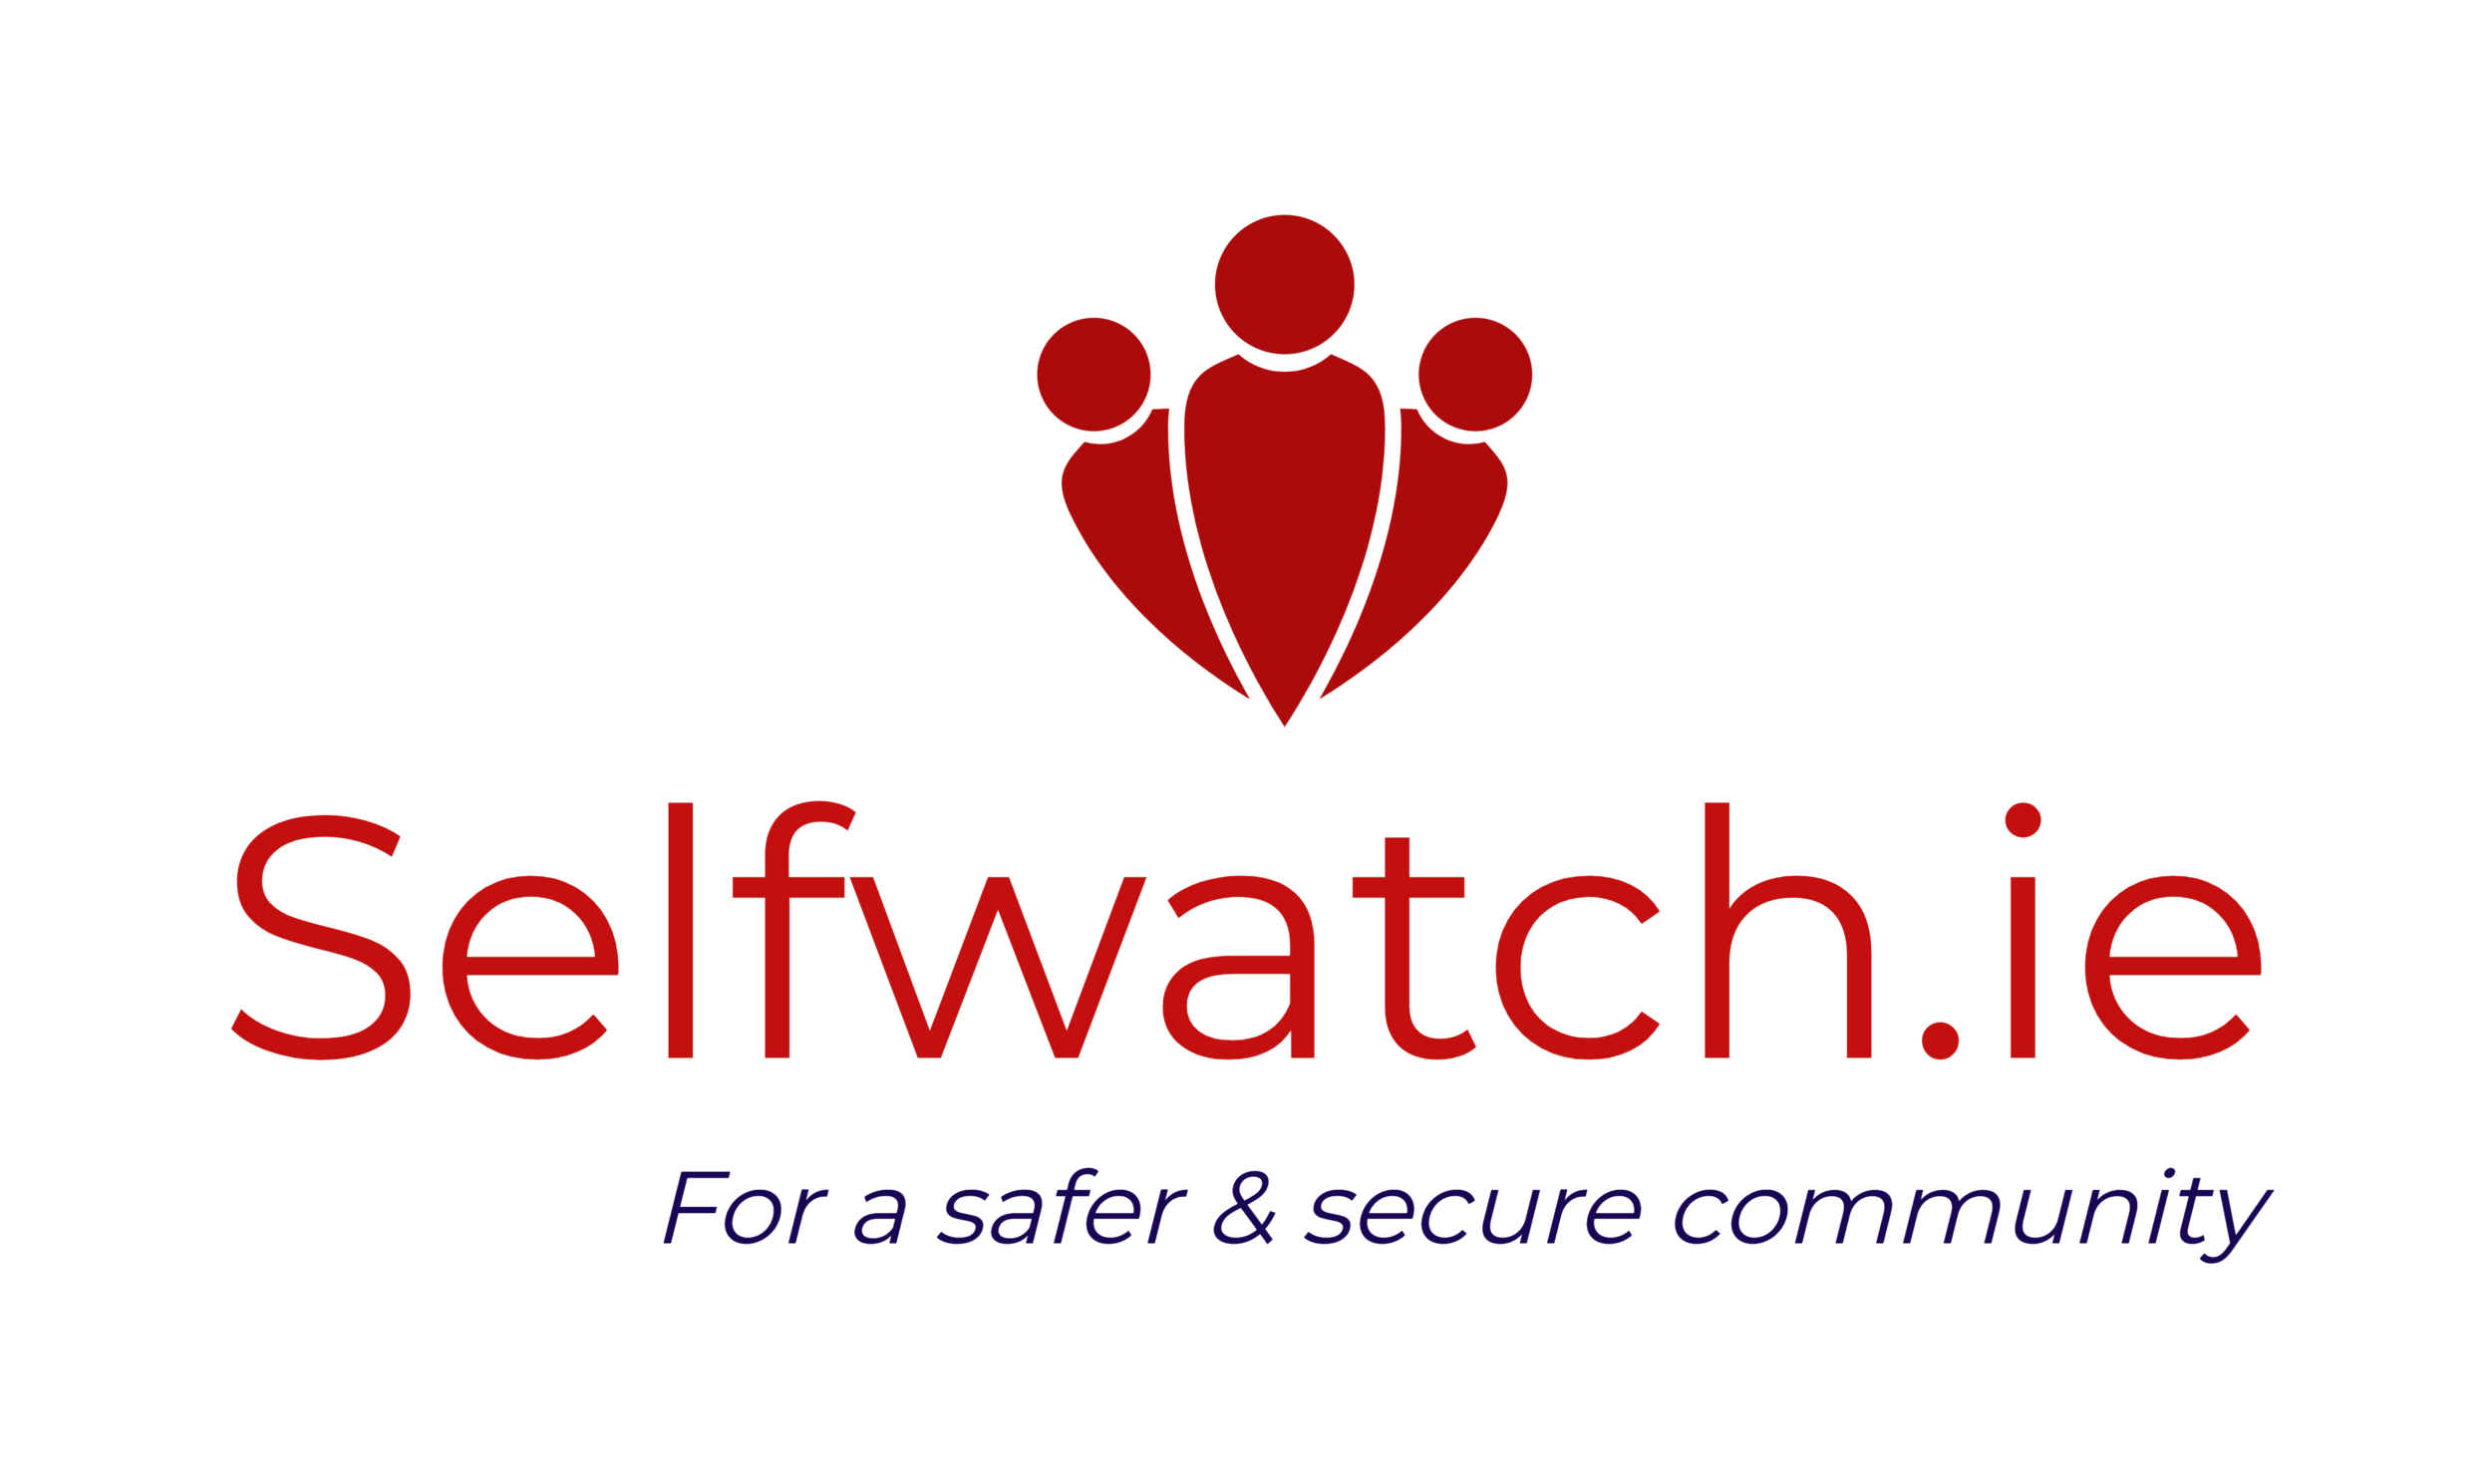 Selfwatch.ie-logo (6).png